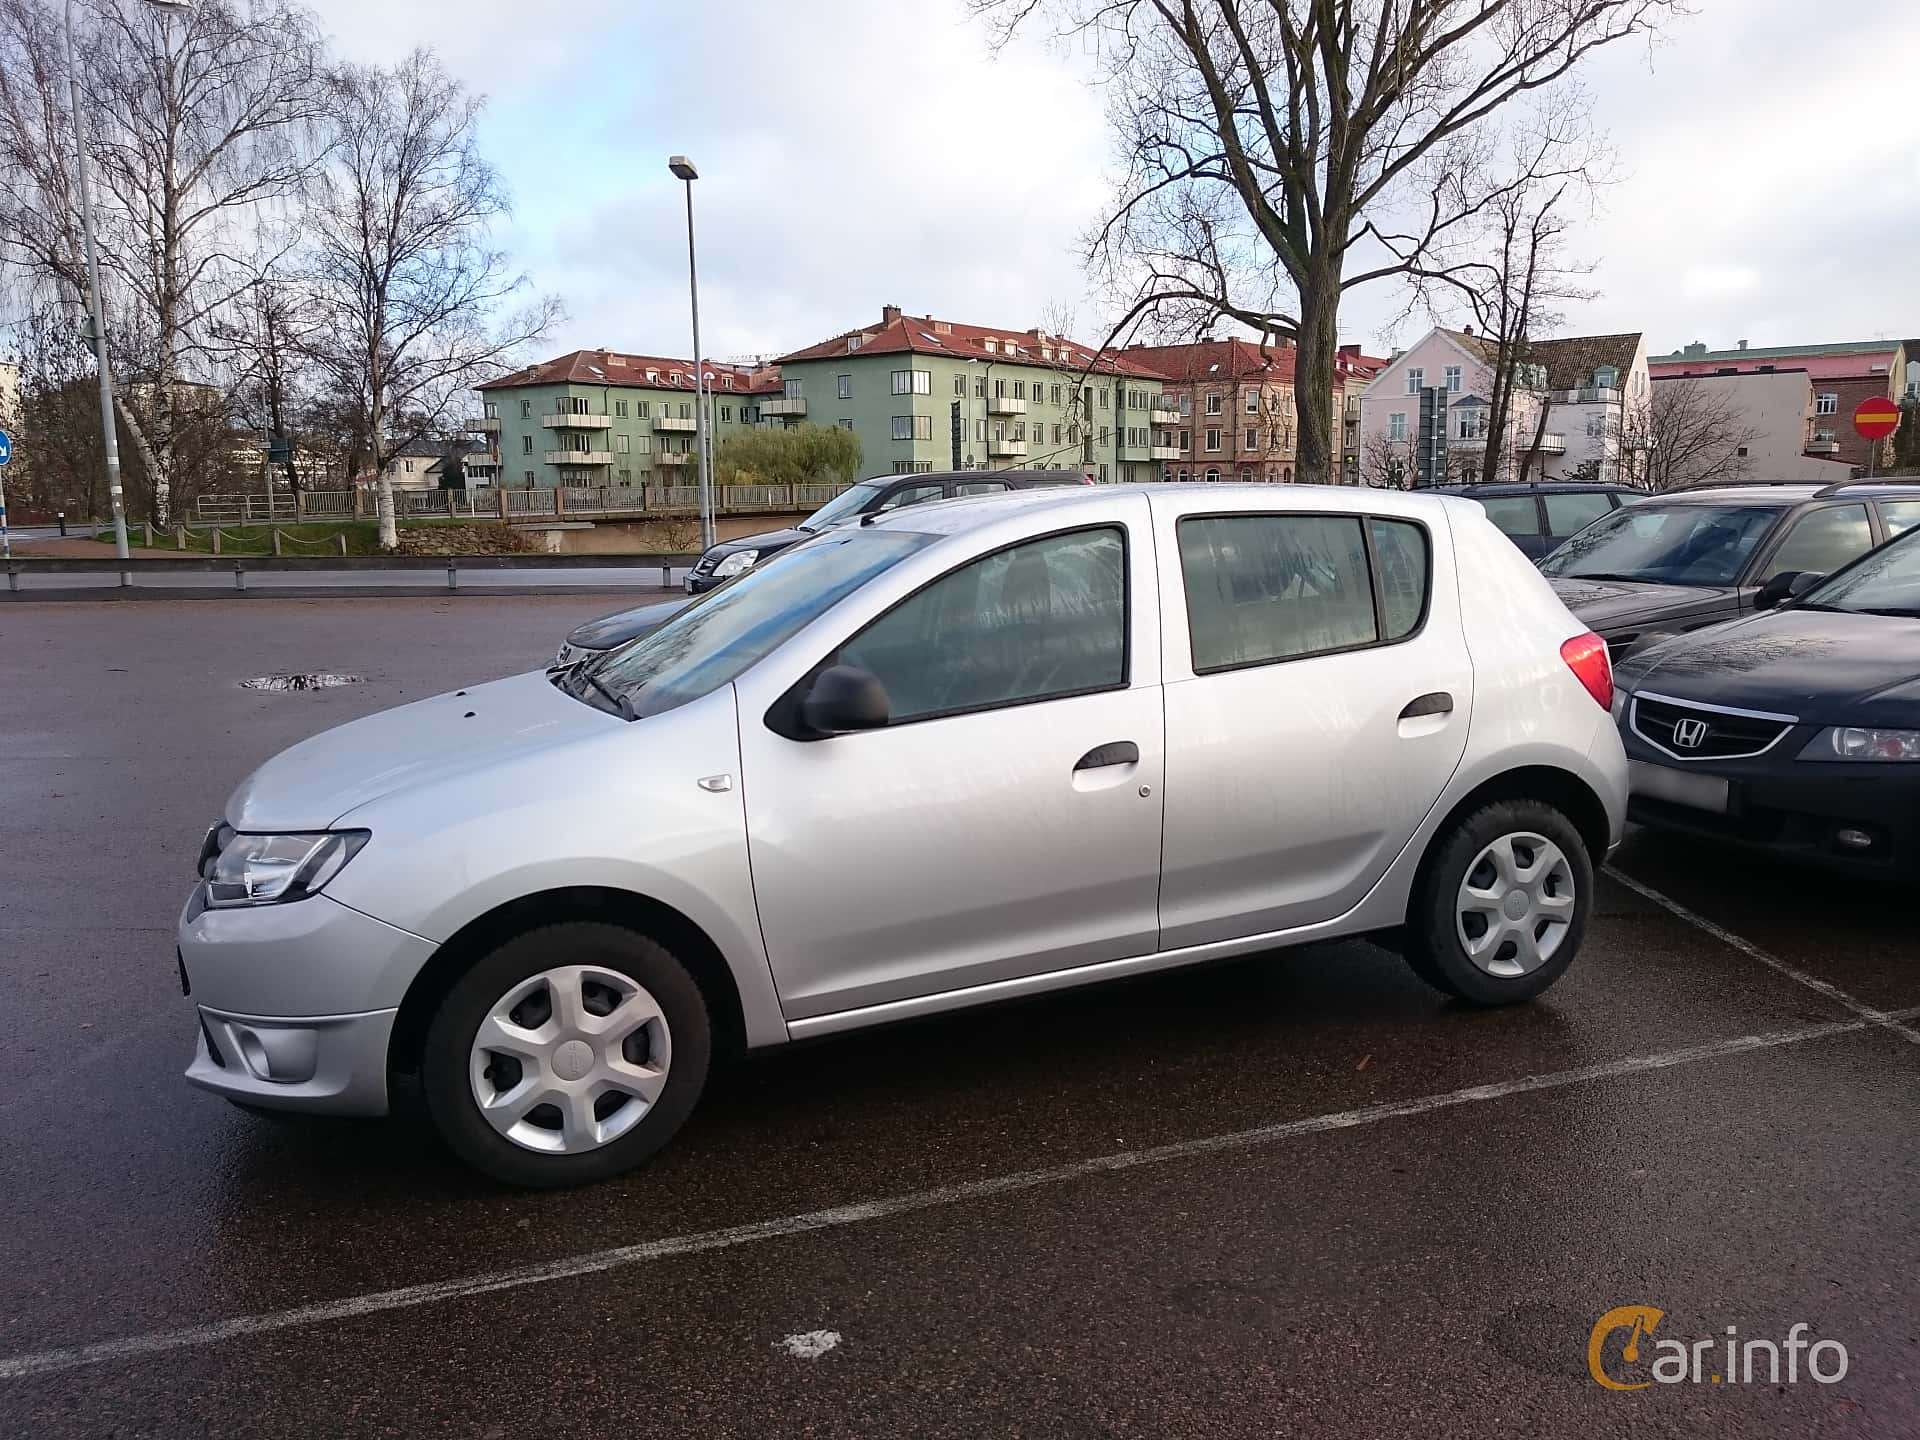 dacia sandero 2nd generation 1 2 lpg eco2 manual 5 speed. Black Bedroom Furniture Sets. Home Design Ideas